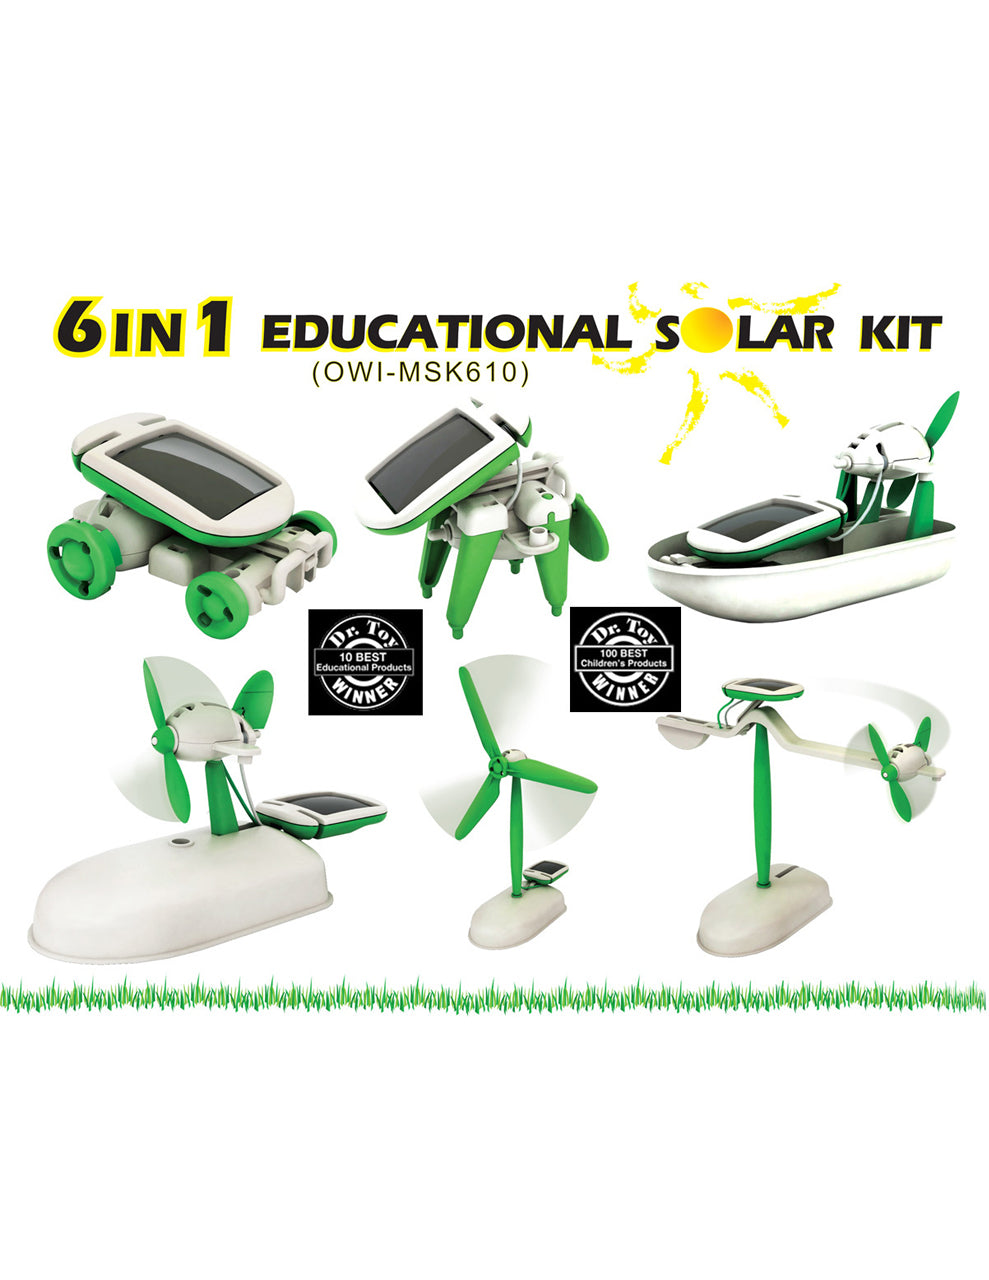 OWI Robot 6 In 1 Educational Solar Kit-Mini Solar Kit owi-msk610